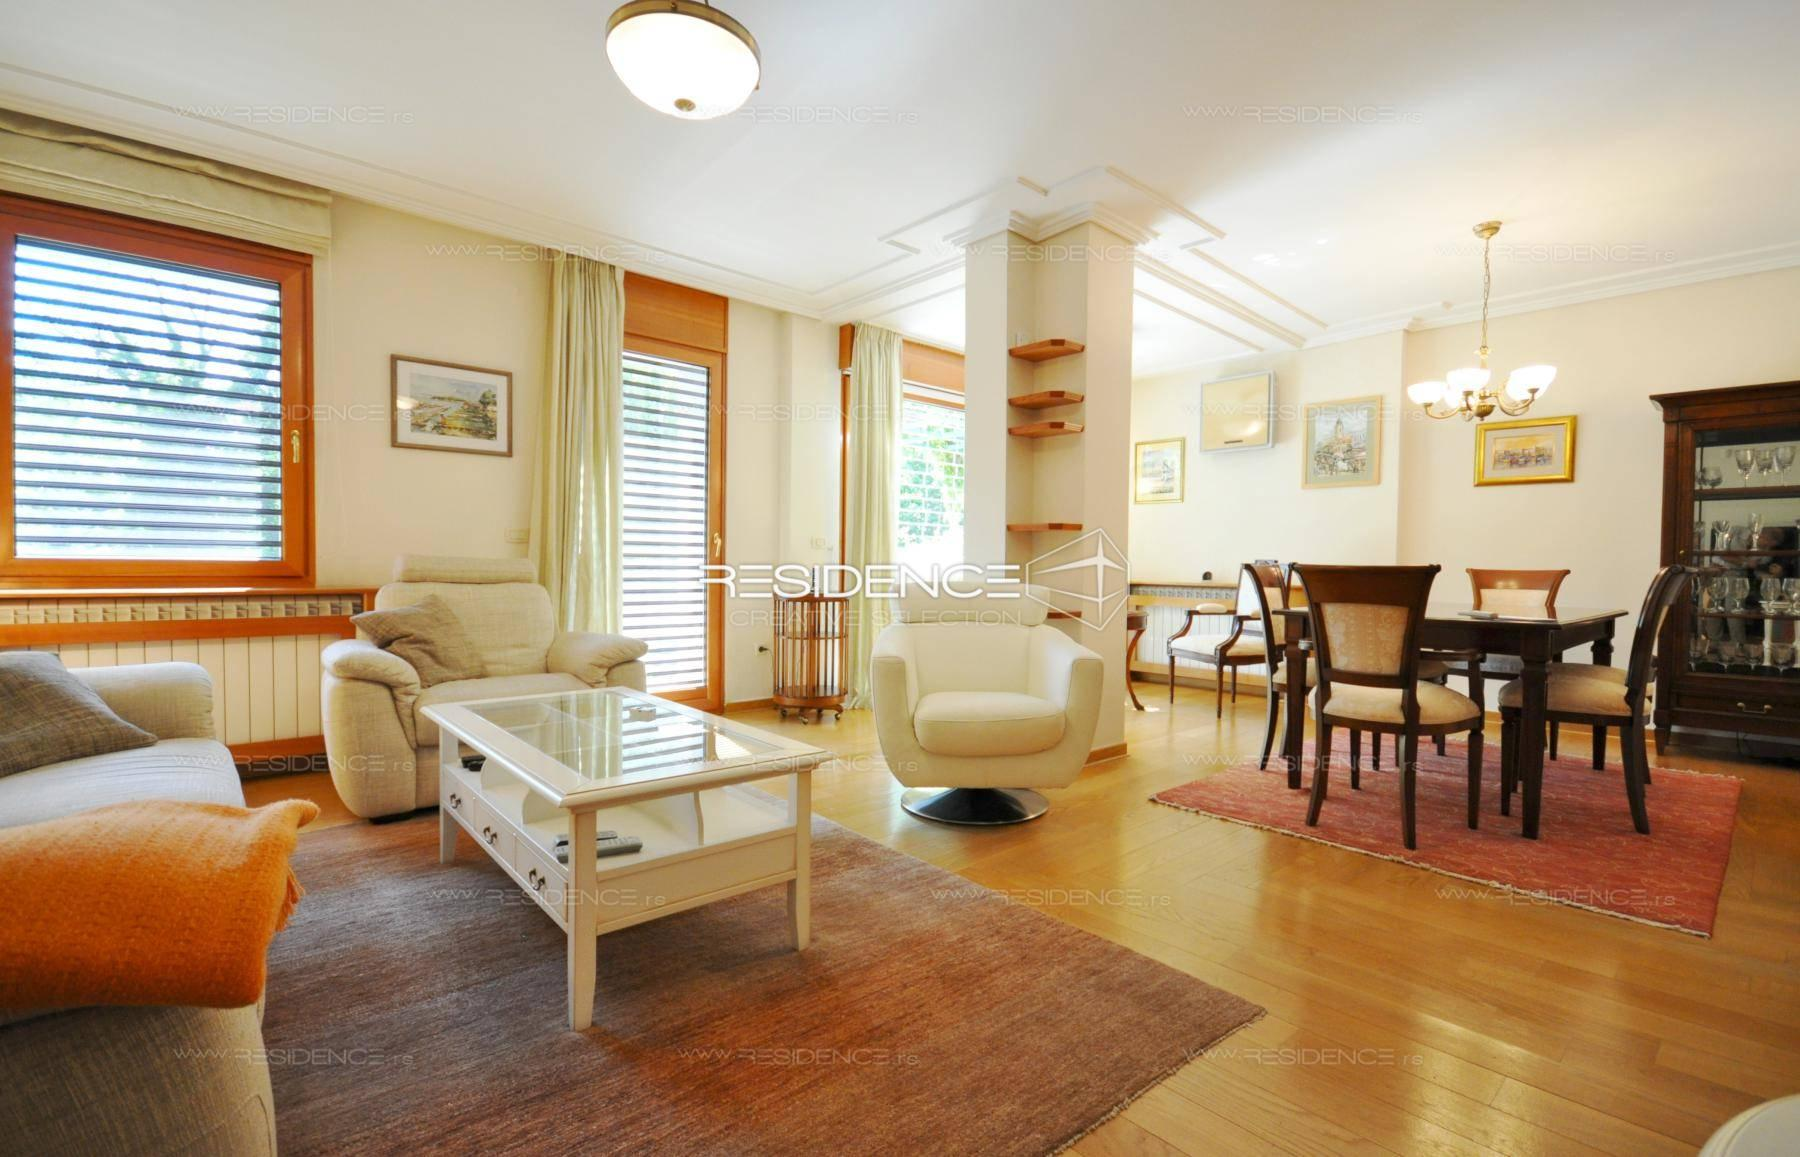 Fully Furnished House For Rent Nested In A Quiet